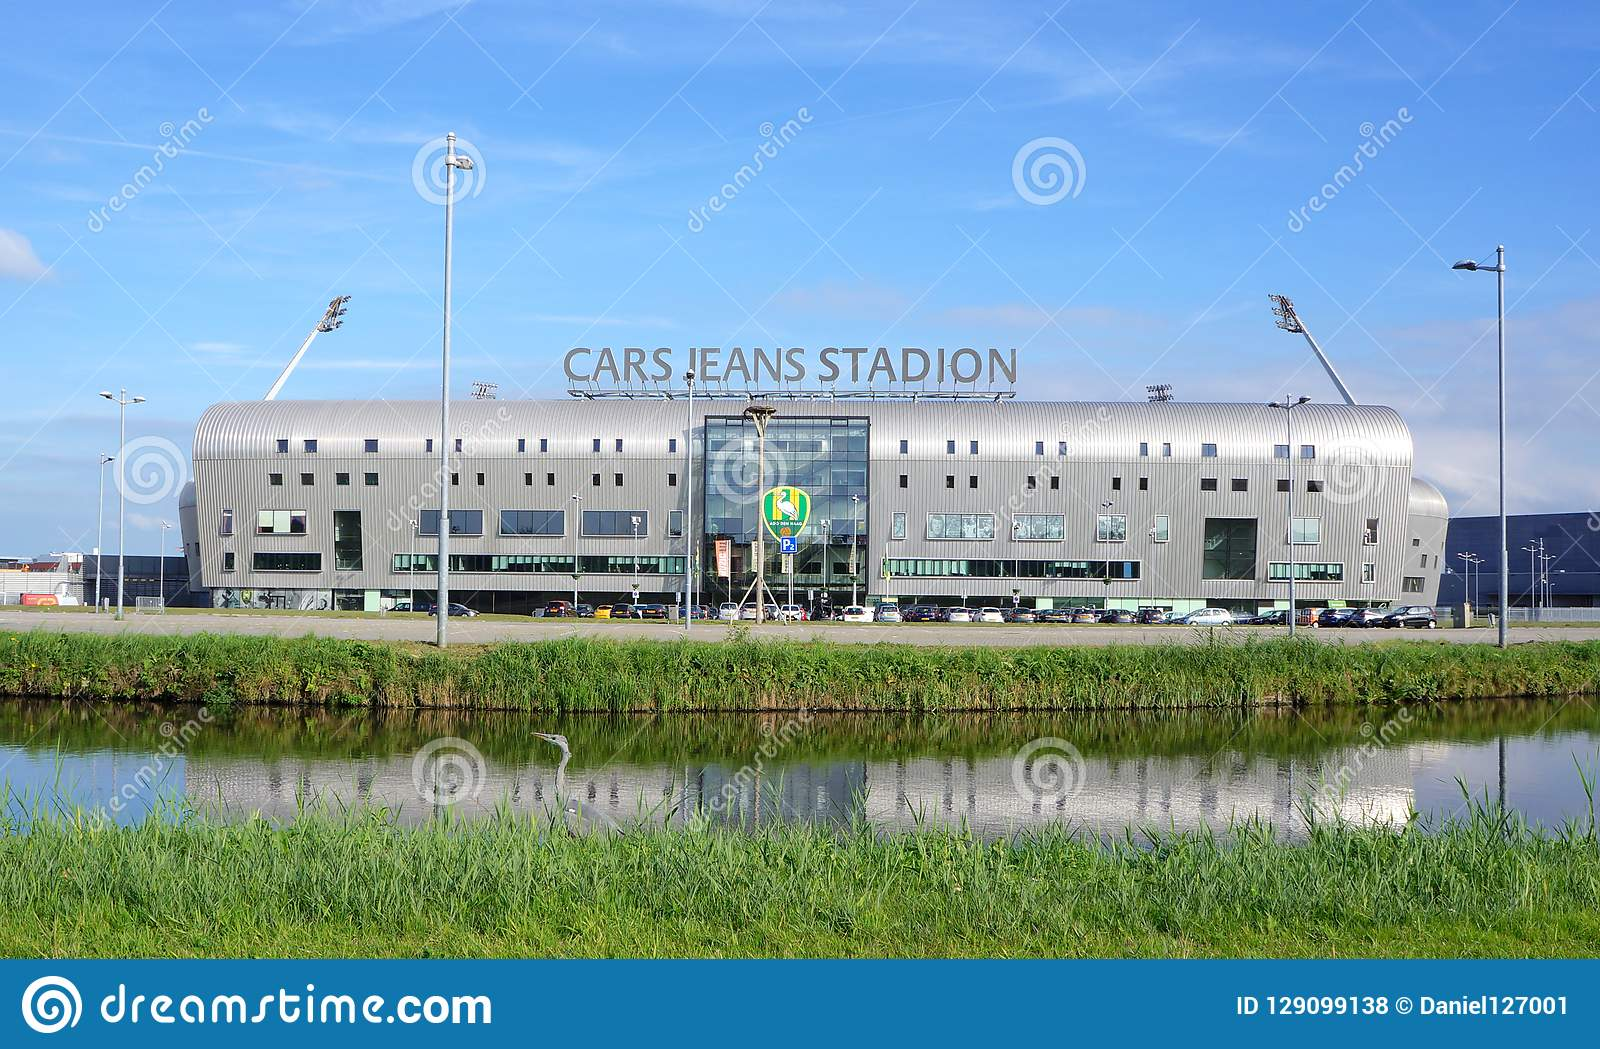 Cars Jeans Stadion Stadium Editorial Stock Photo Image Of Building 129099138